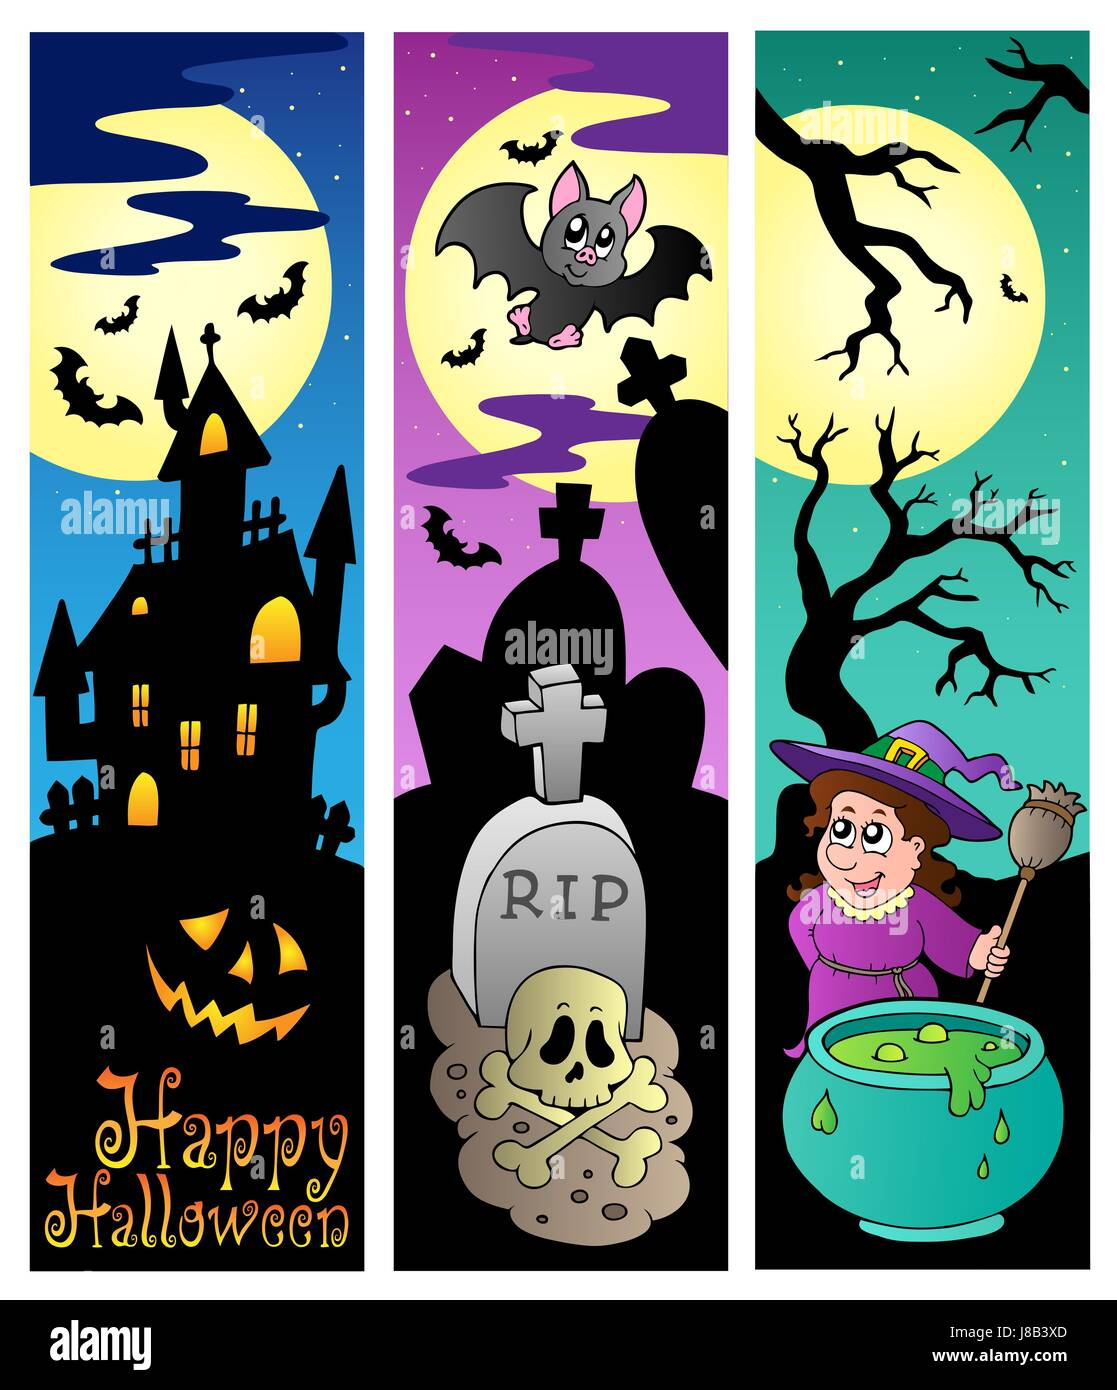 topic, halloween, banner, october, season, seasonal, fall